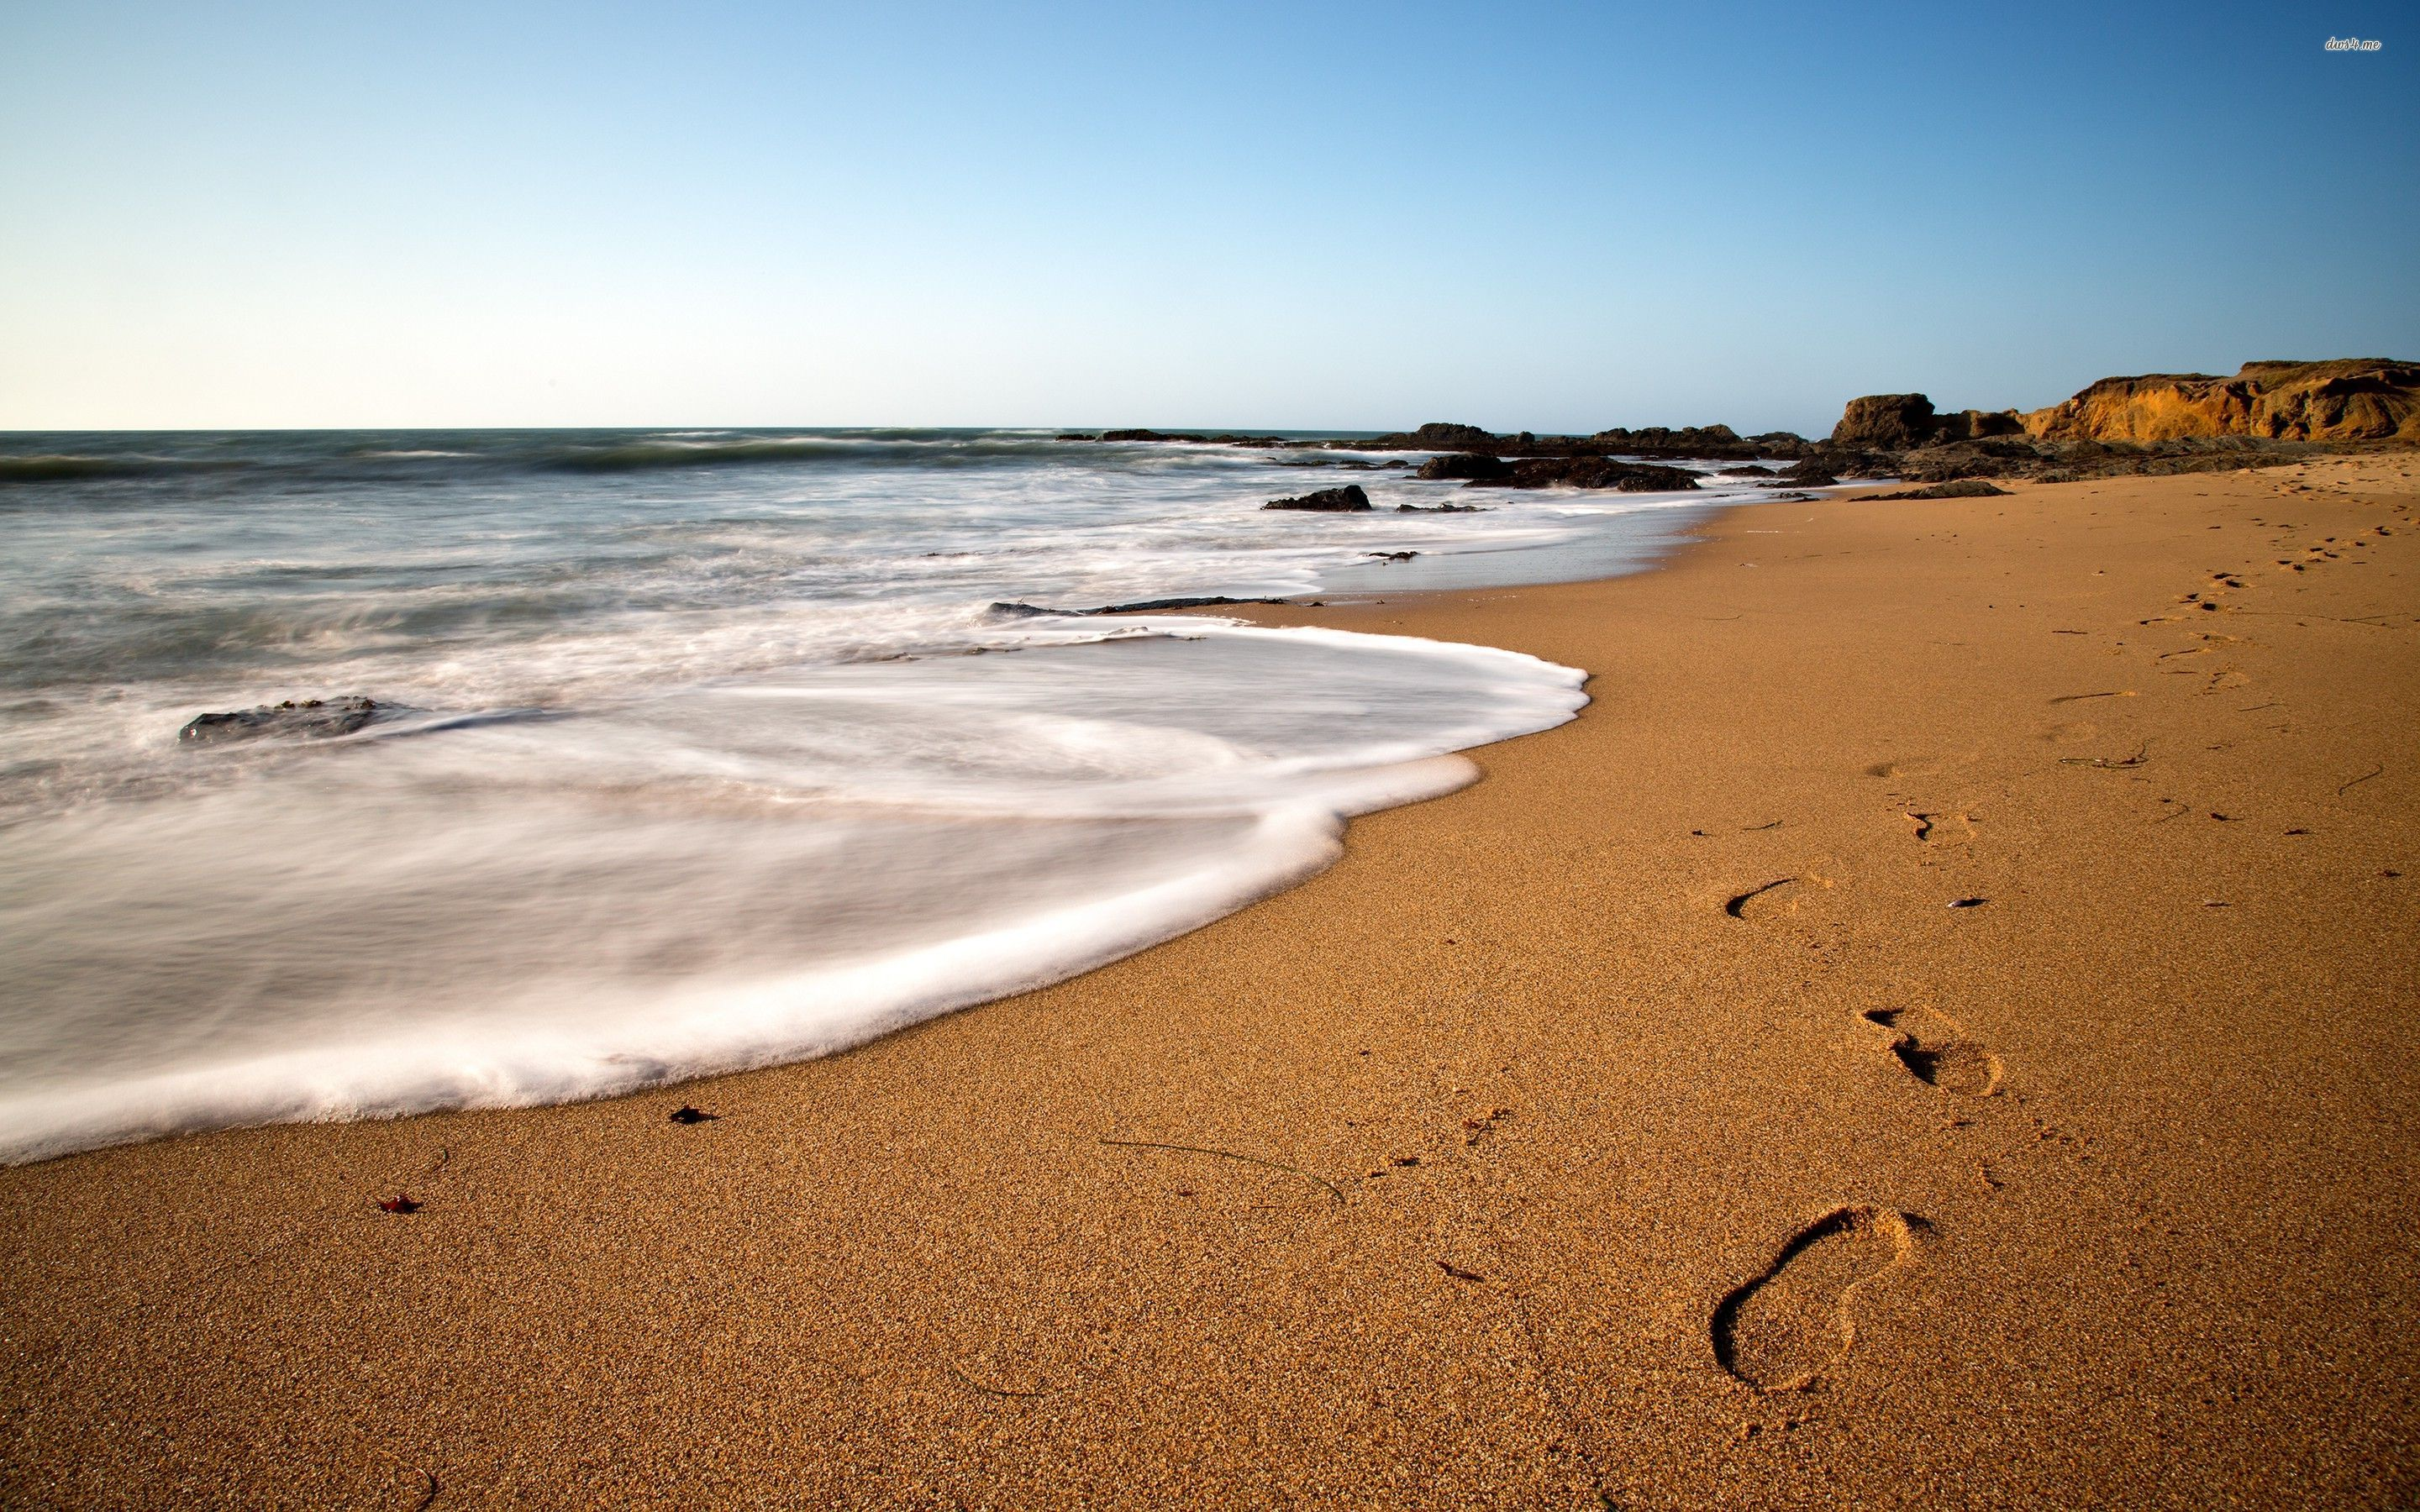 Footprints On The Beach wallpapers HD   458885 2880x1800